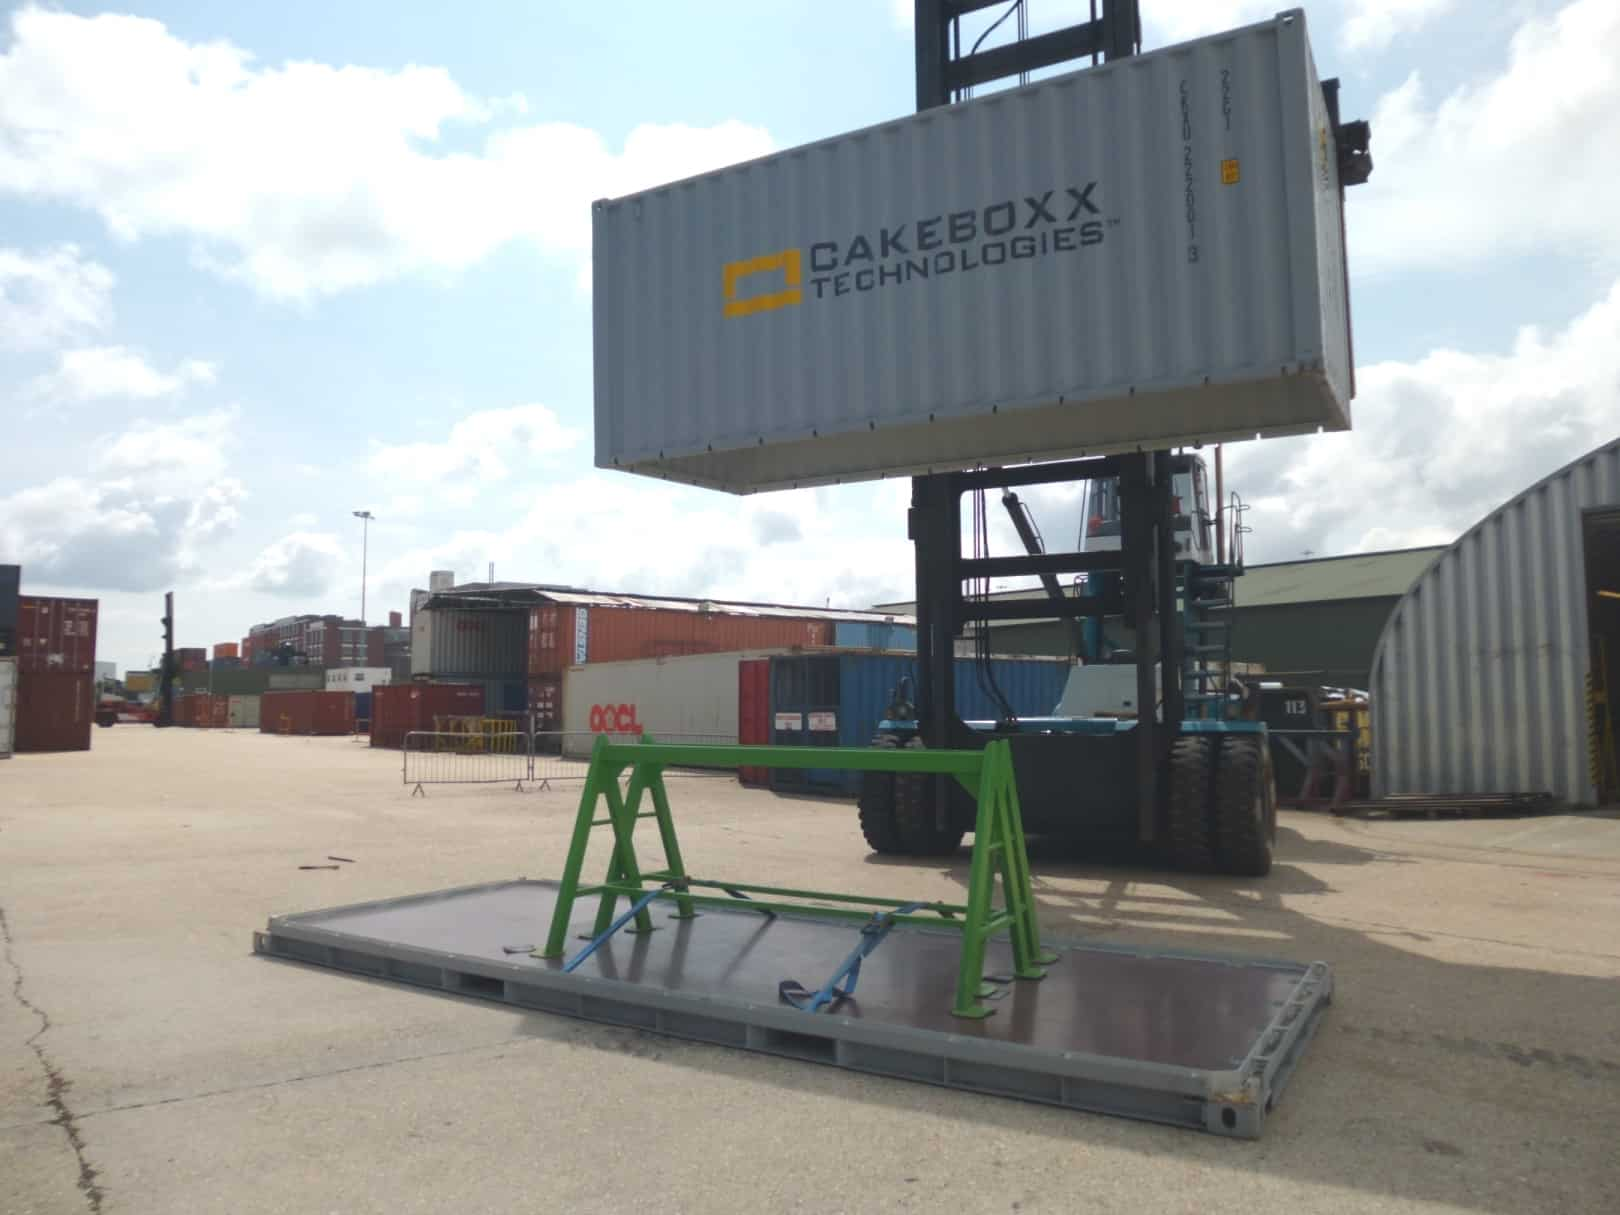 Pentalver scoops UK exclusivity for CakeBoxx containers